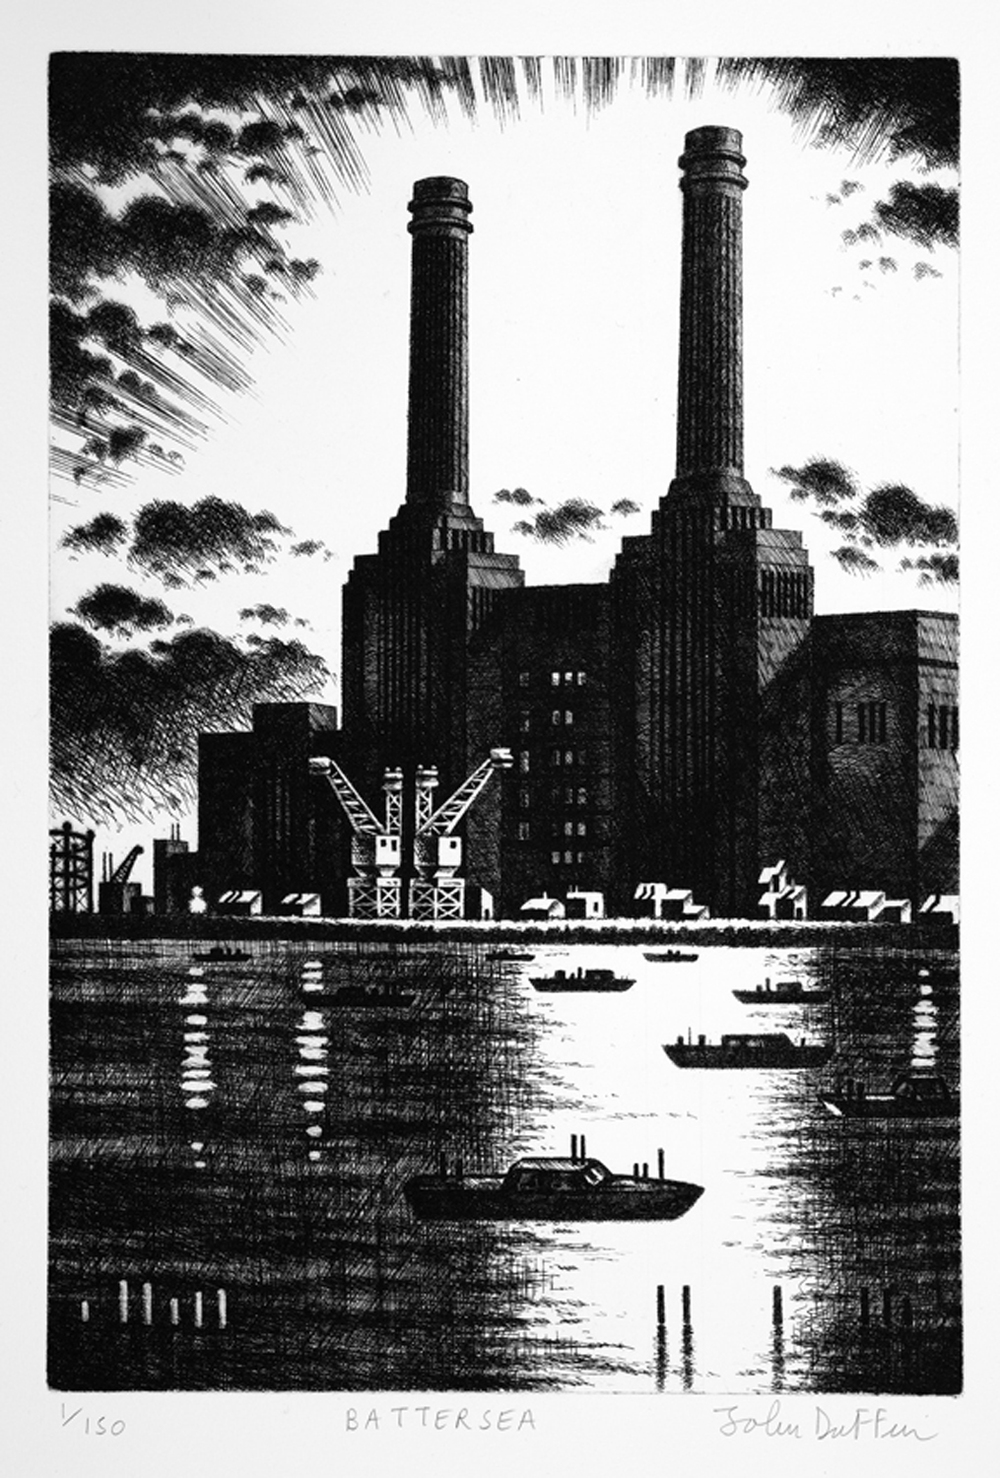 John Duffin   Battersea   etching